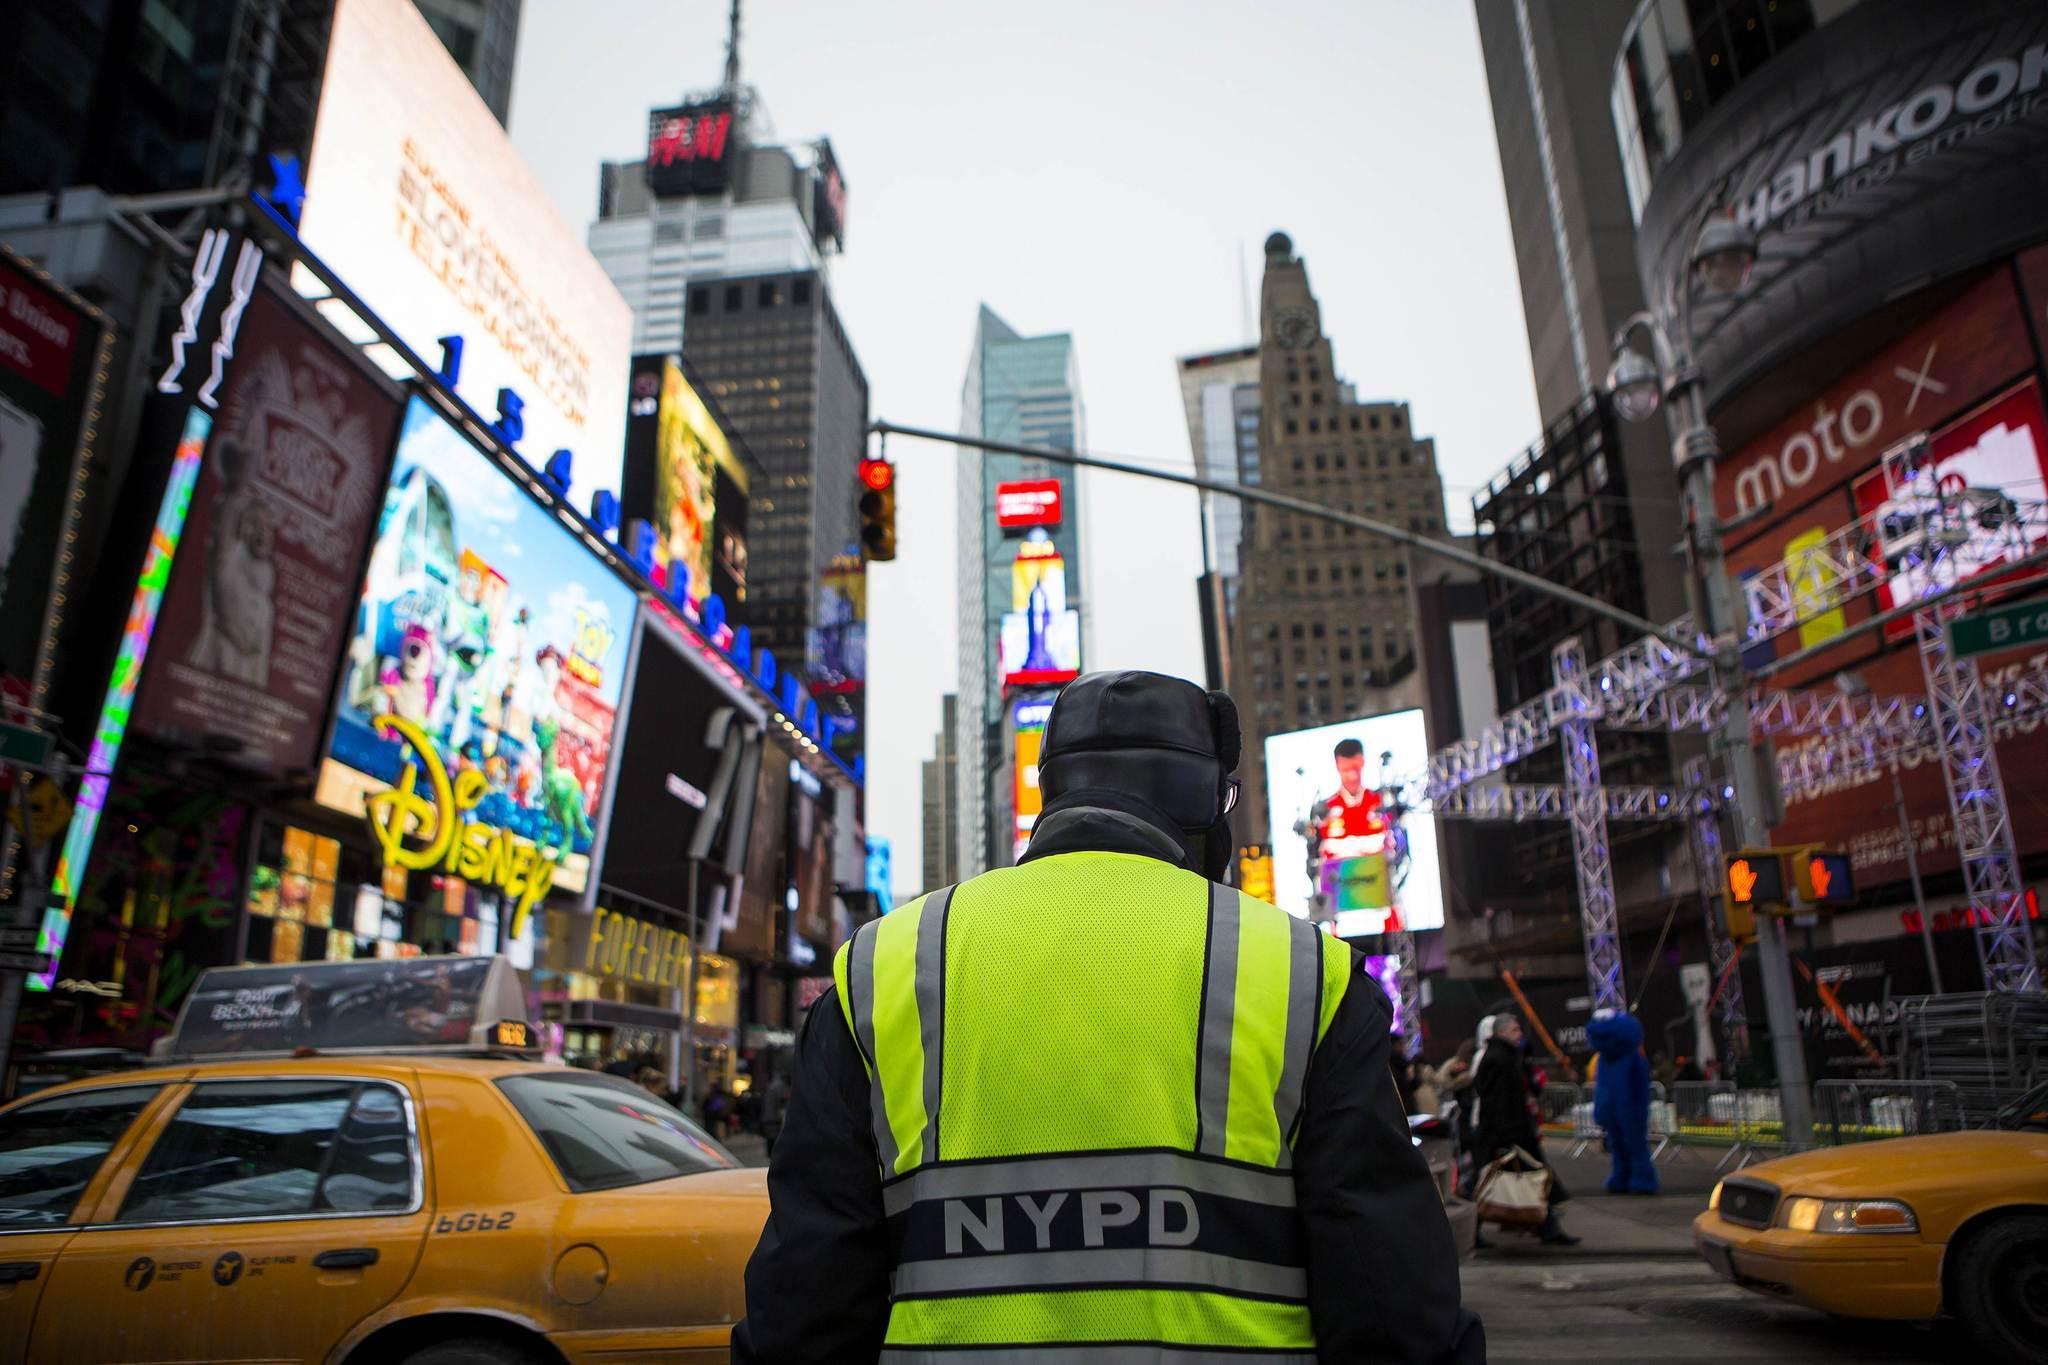 A police officer is seen in Times Square as preparations continue for Super Bowl XLVIII in New York January 26, 2014. New Jersey's MetLife Stadium will host the first outdoor, cold-weather Super Bowl February 2. As part of festivities, the NFL is sponsoring activities along 'Super Bowl Boulevard', located on Broadway between 34th and 47th streets in Manhattan.